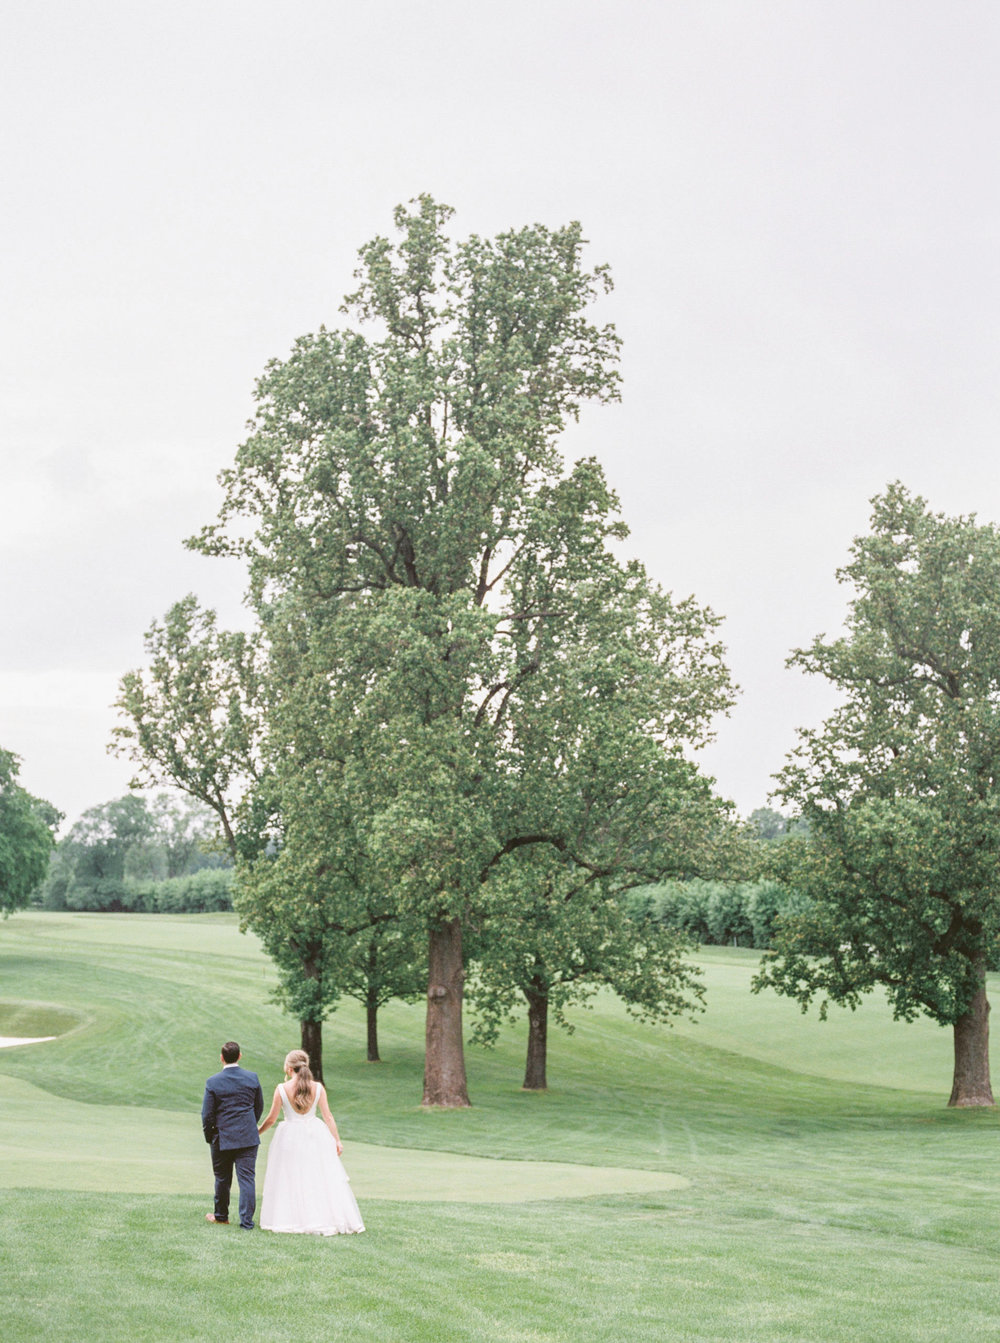 The rolling hills of green from this Italian inspired summer lemon wedding at the Baltimore Country Club.